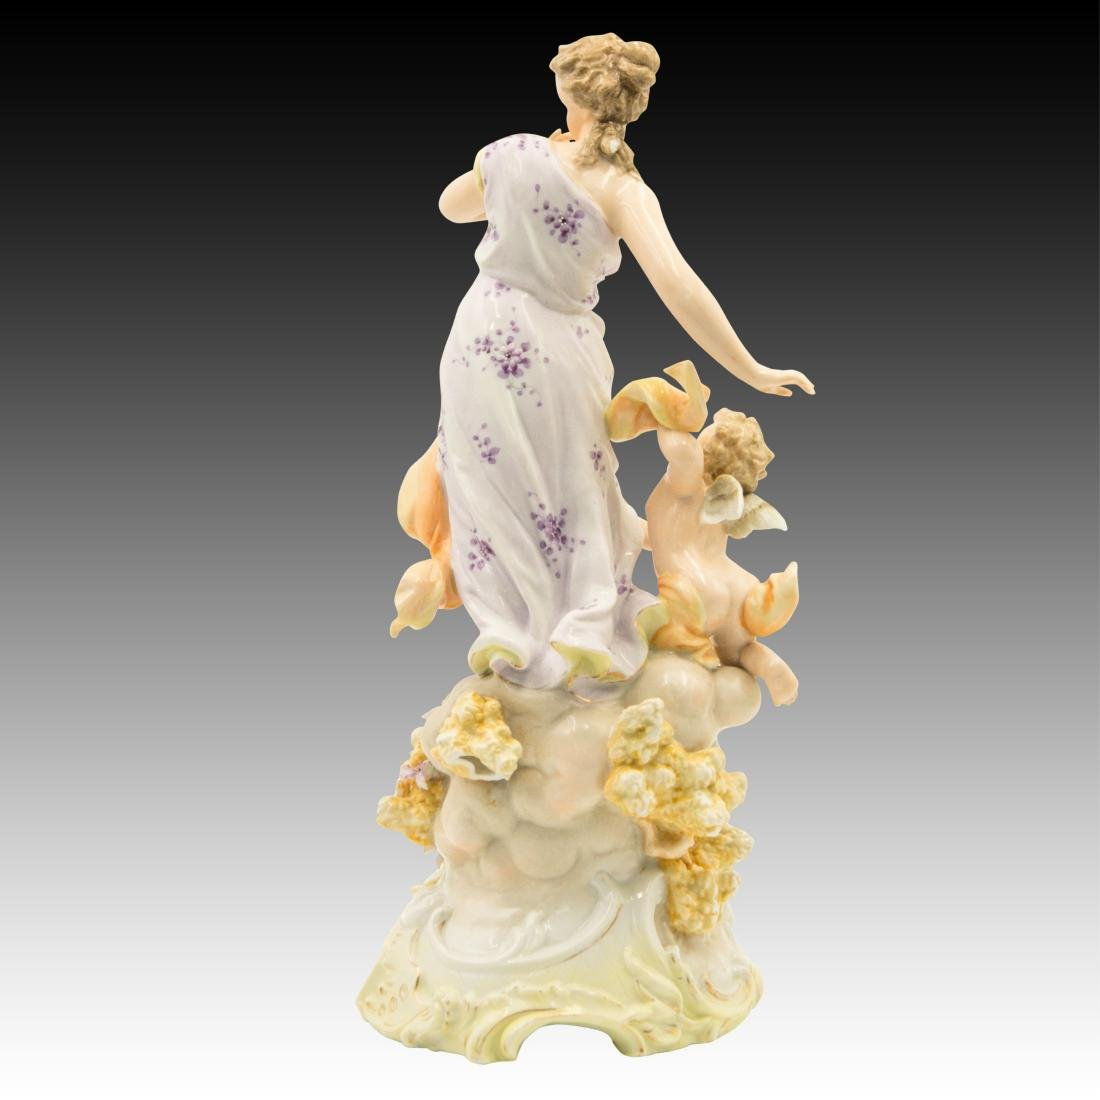 Young Woman on a Cloud with a Cherub Figurine - 3